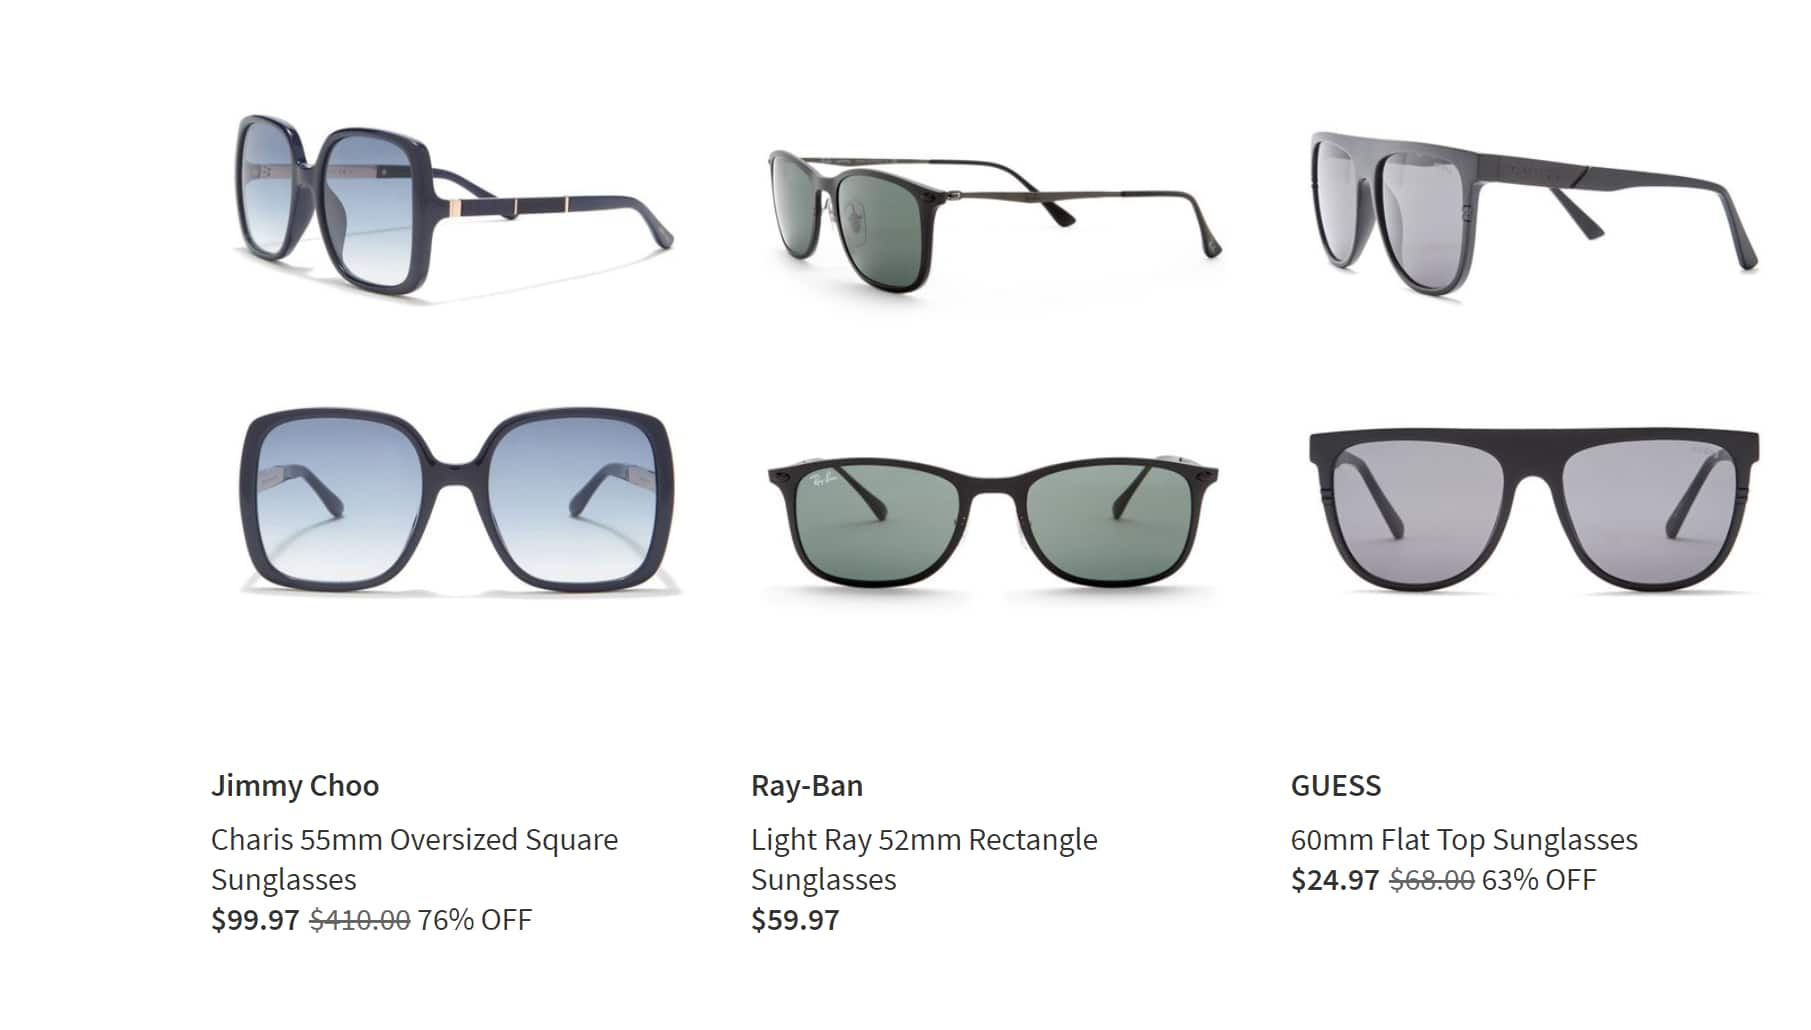 352031b31f1 Up to 75% off Designer Sunglasses - Gucci